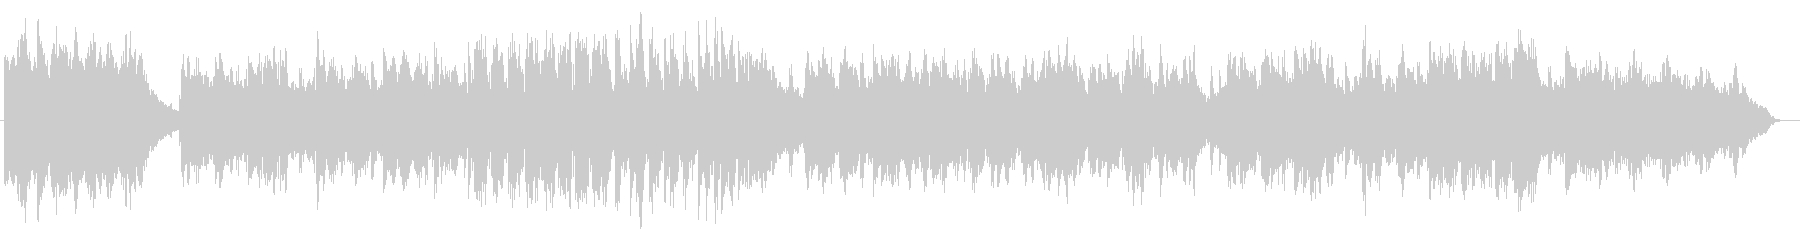 Dramatic instrumental songs by the piano's unreproduced waveform